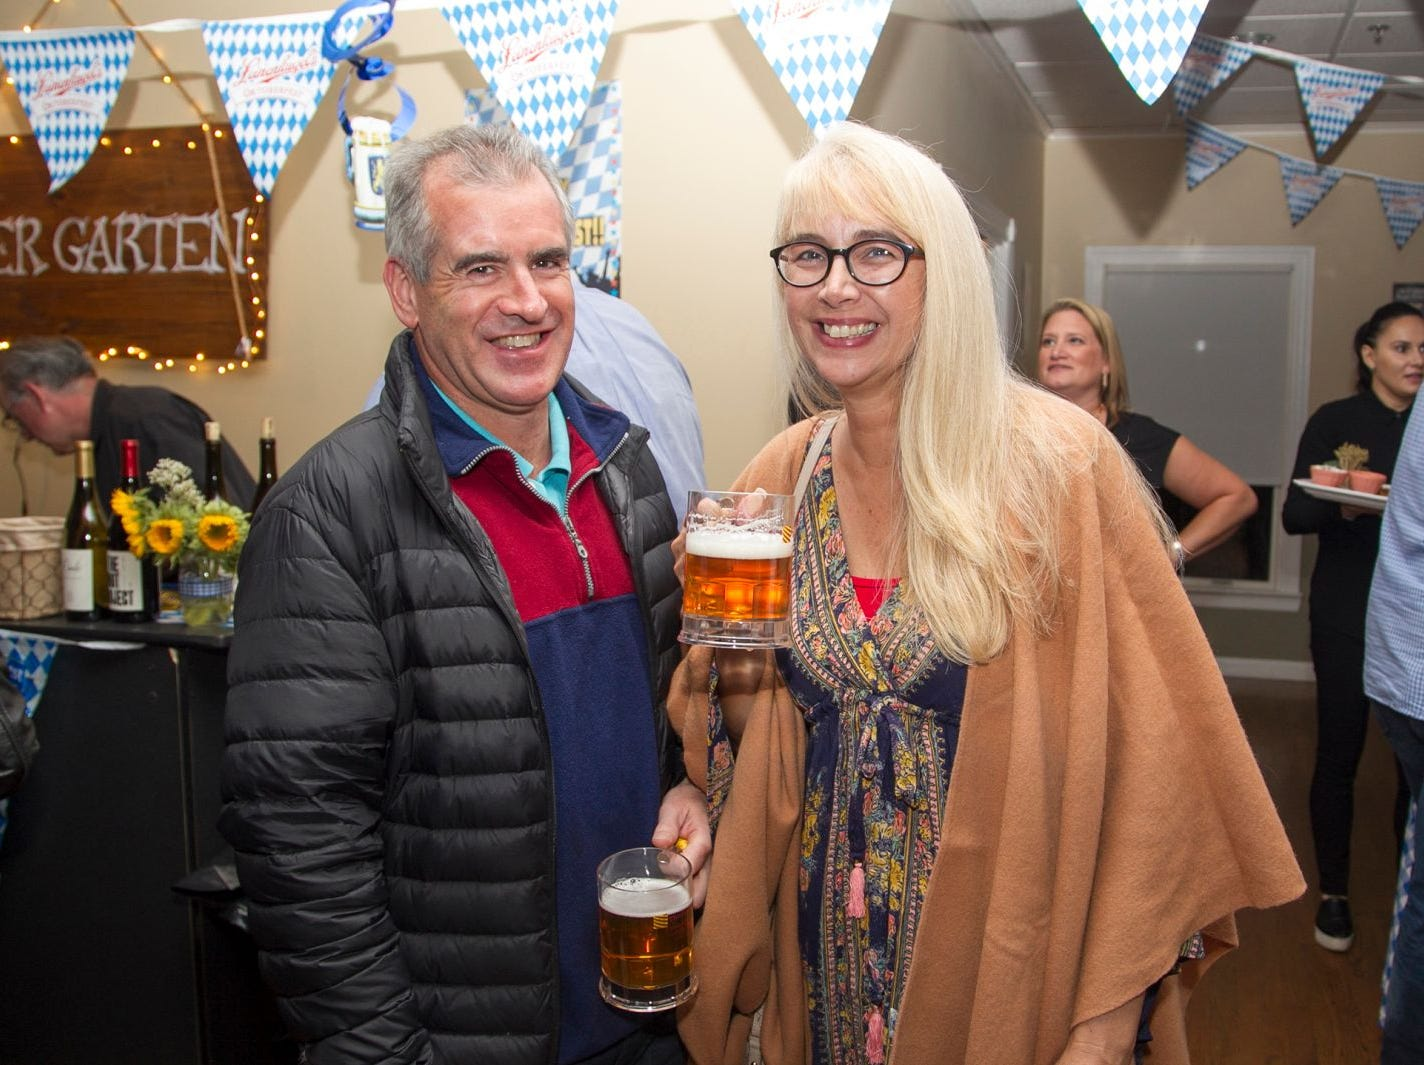 Alexander and Karen Hoy. Ridgewood Education Foundation's 2018 Oktoberfest at the Hermitage. 09/29/2018